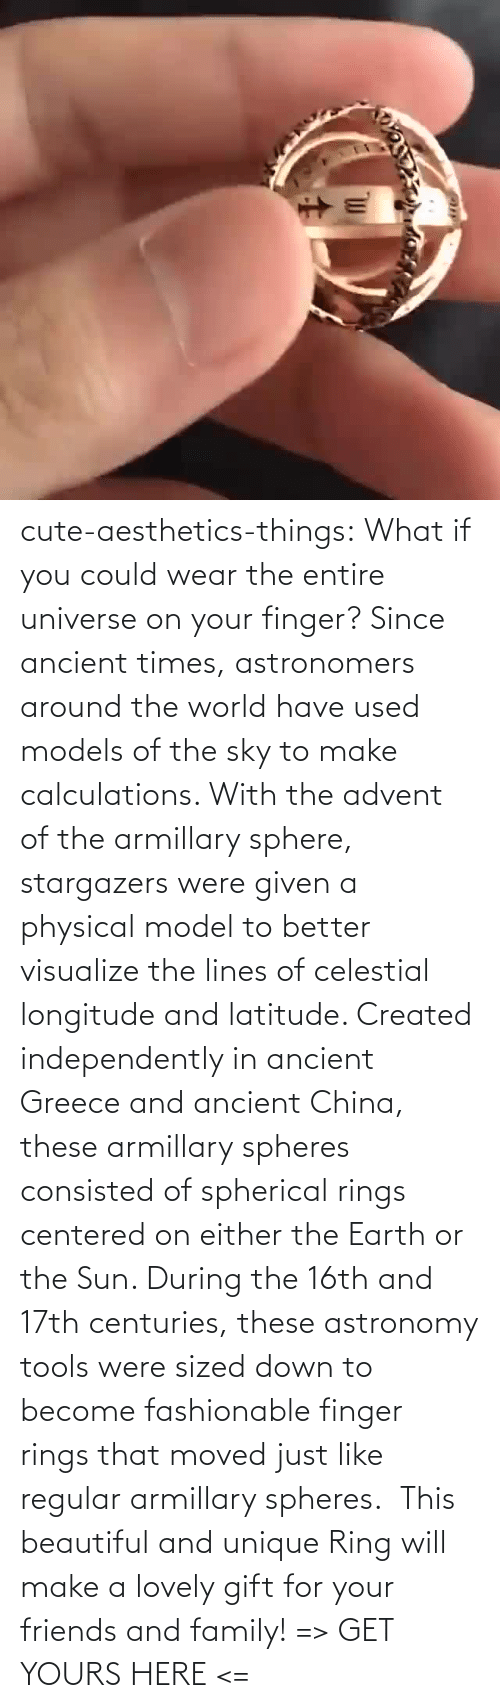 finger: cute-aesthetics-things: What if you could wear the entire universe on your finger? Since ancient times, astronomers around the world have used models of the sky to make calculations. With the advent of the armillary sphere, stargazers were given a physical model to better visualize the lines of celestial longitude and latitude. Created independently in ancient Greece and ancient China, these armillary spheres consisted of spherical rings centered on either the Earth or the Sun. During the 16th and 17th centuries, these astronomy tools were sized down to become fashionable finger rings that moved just like regular armillary spheres.  This beautiful and unique Ring will make a lovely gift for your friends and family! => GET YOURS HERE <=